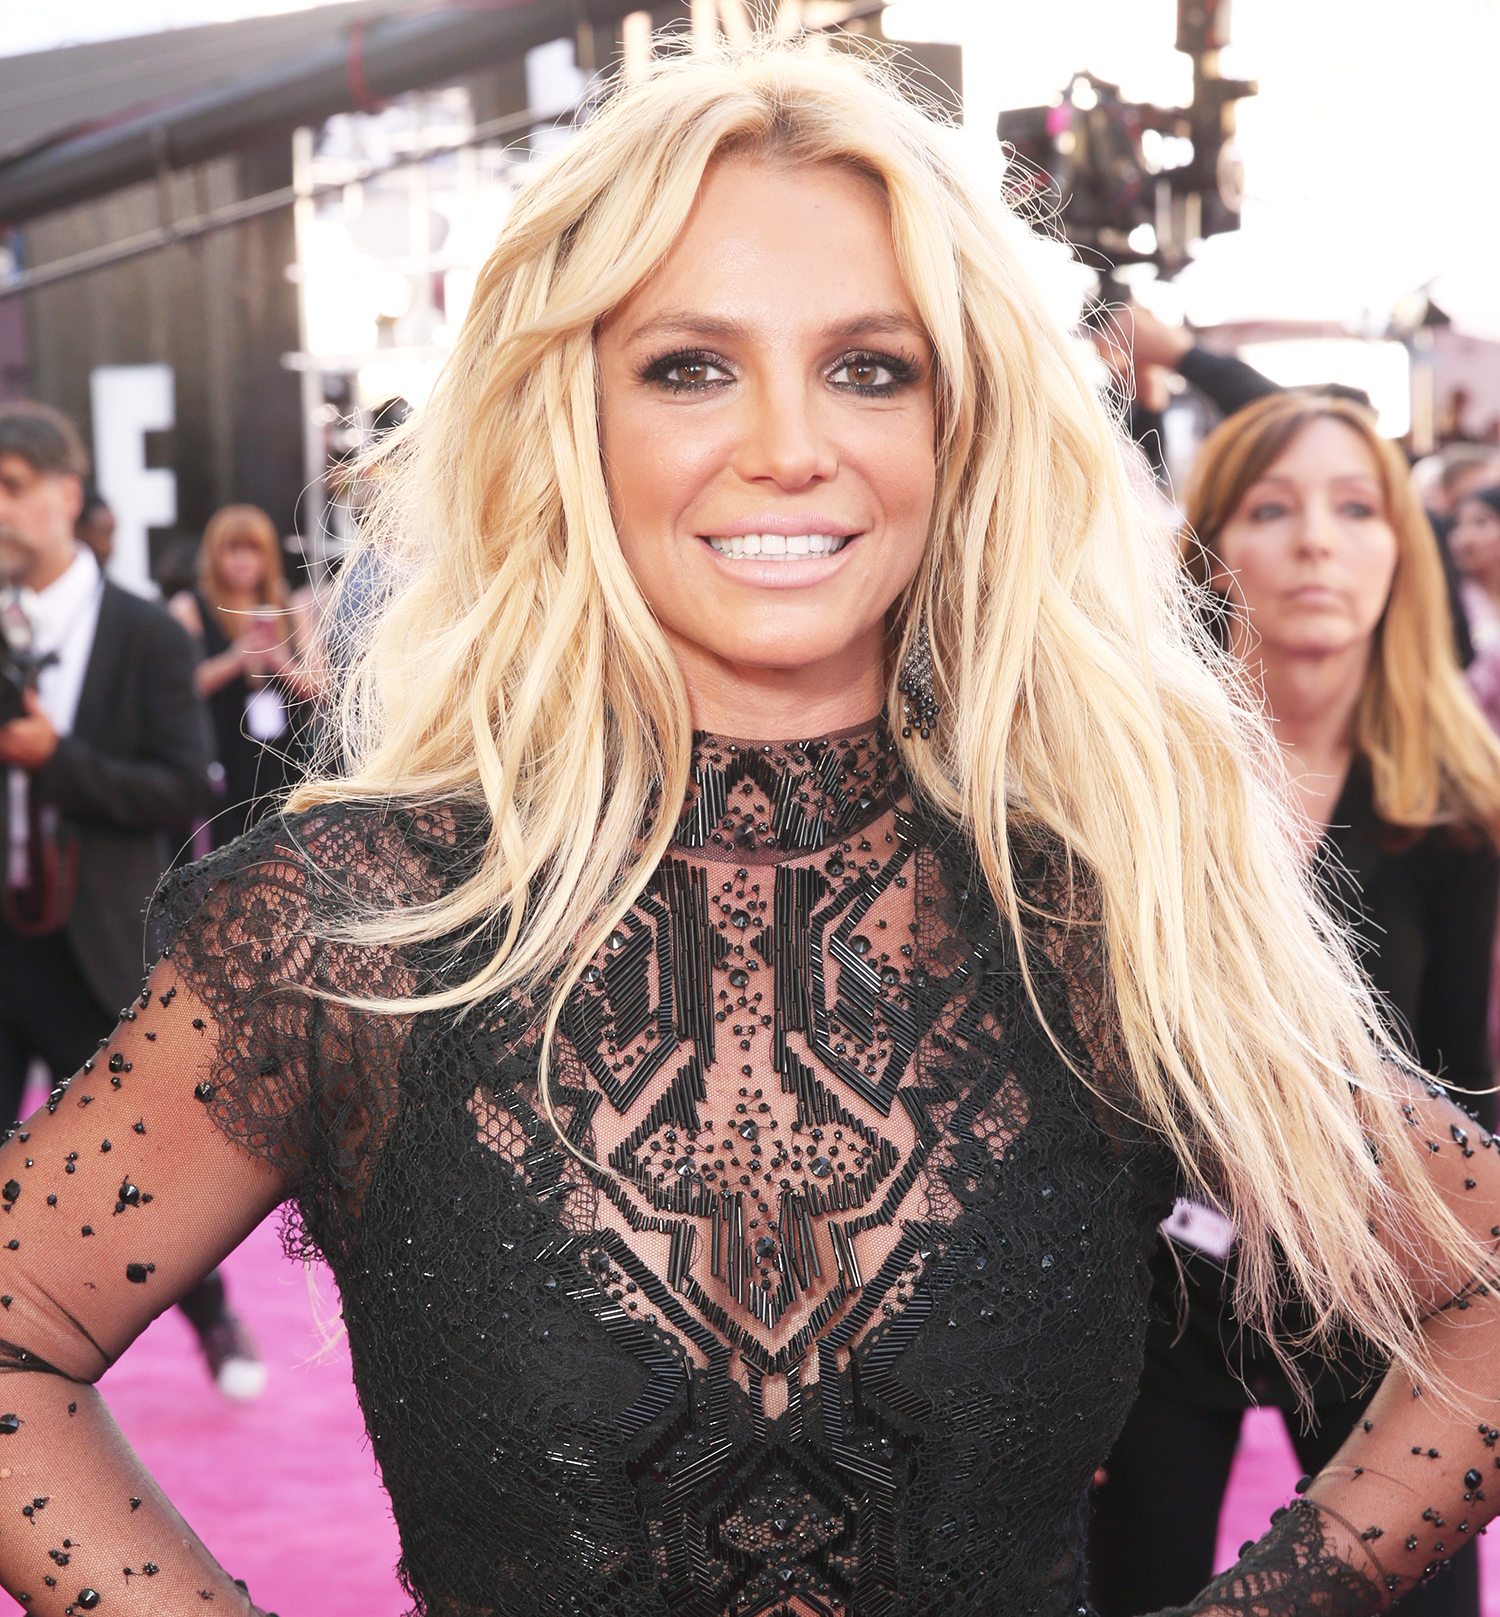 7 Things Britney Spears Did to Get the Body She Has Now forecasting